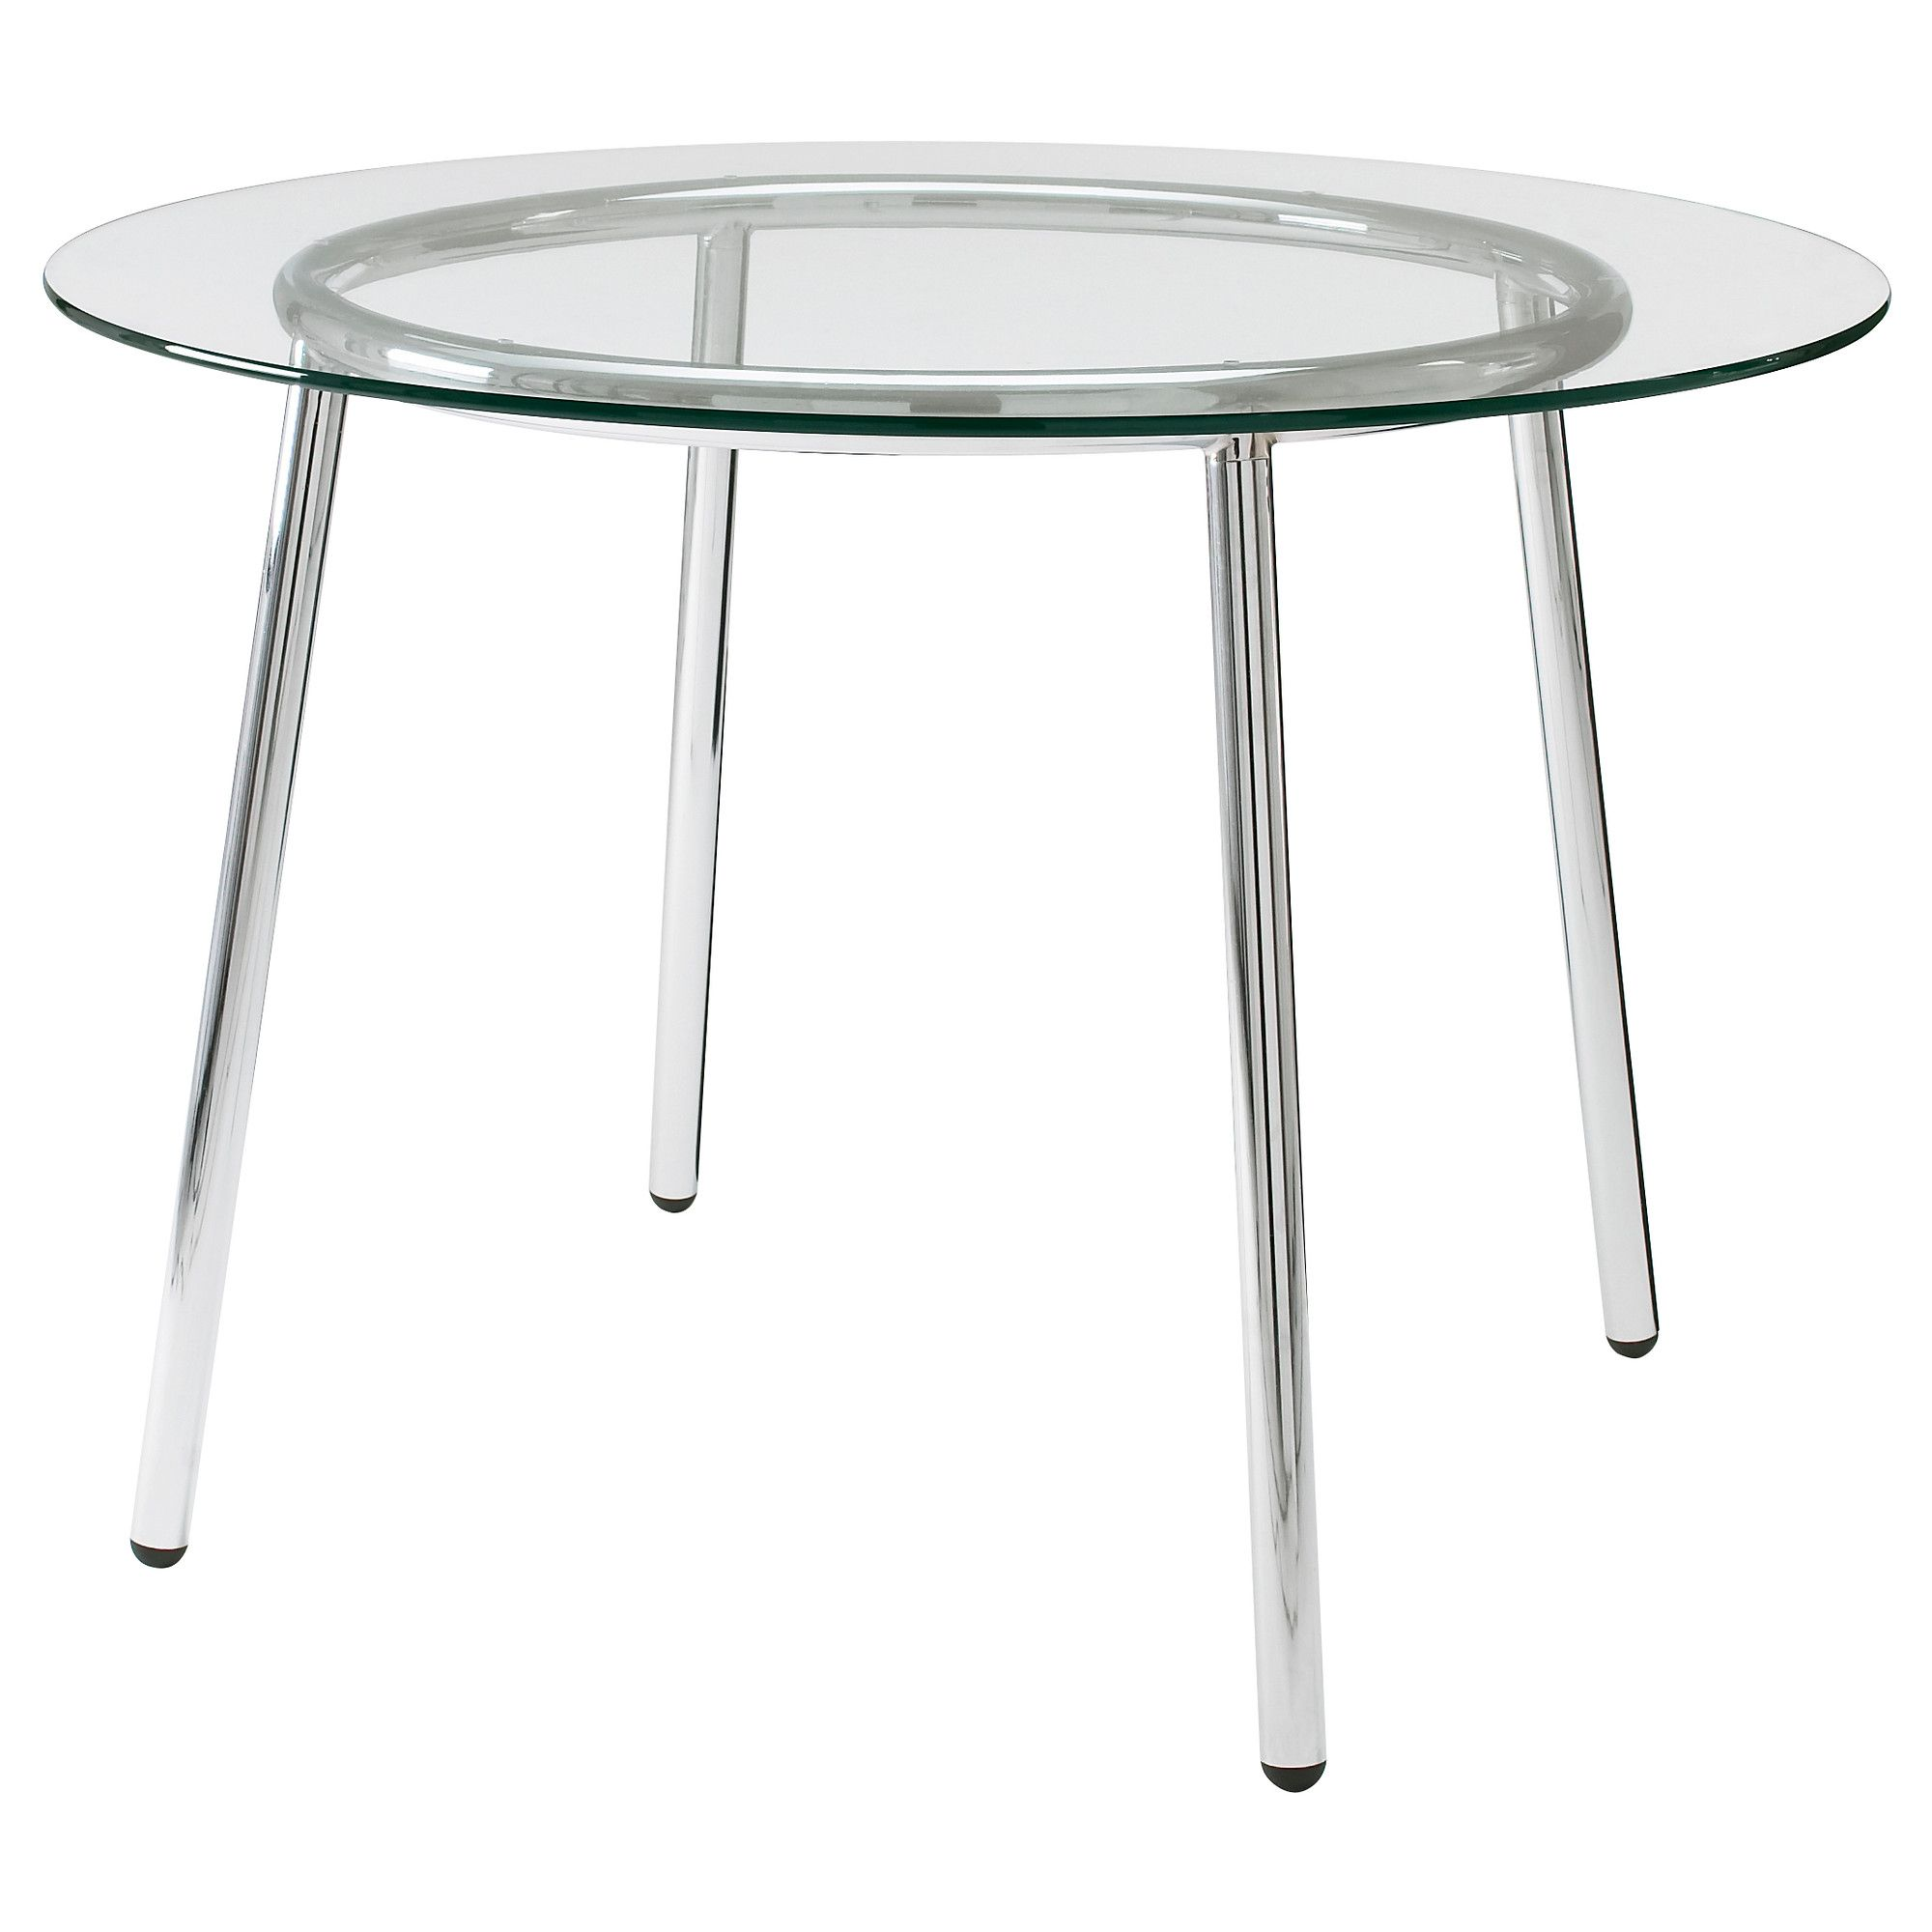 Small Round Dining Table Ikea Salmi Dining Table Glass Chrome Plated 129 00 Article Number